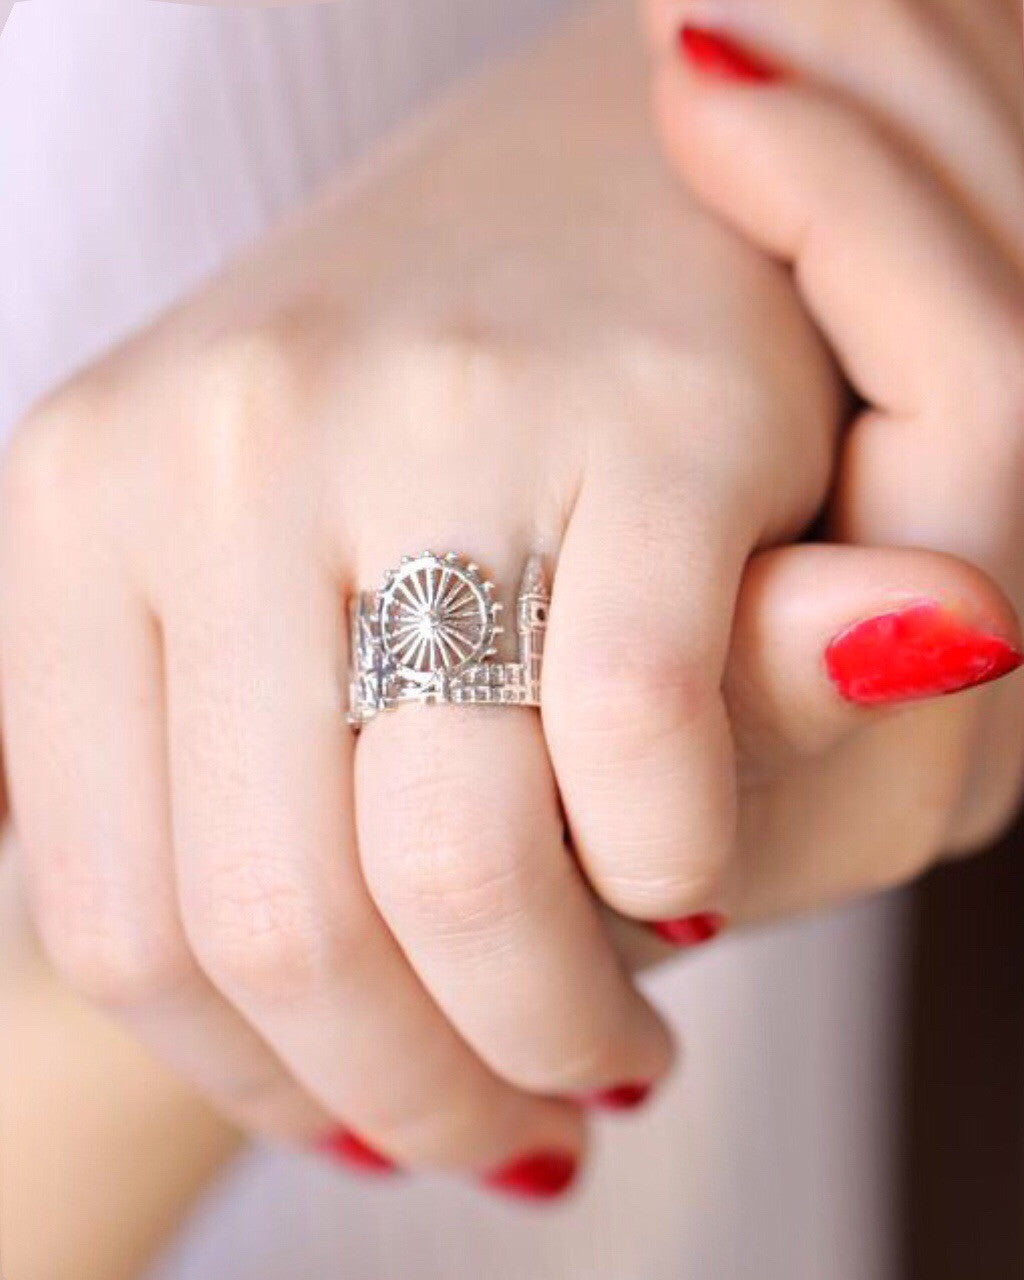 London silver ring - Skyline rings by CITIMI Jewelry